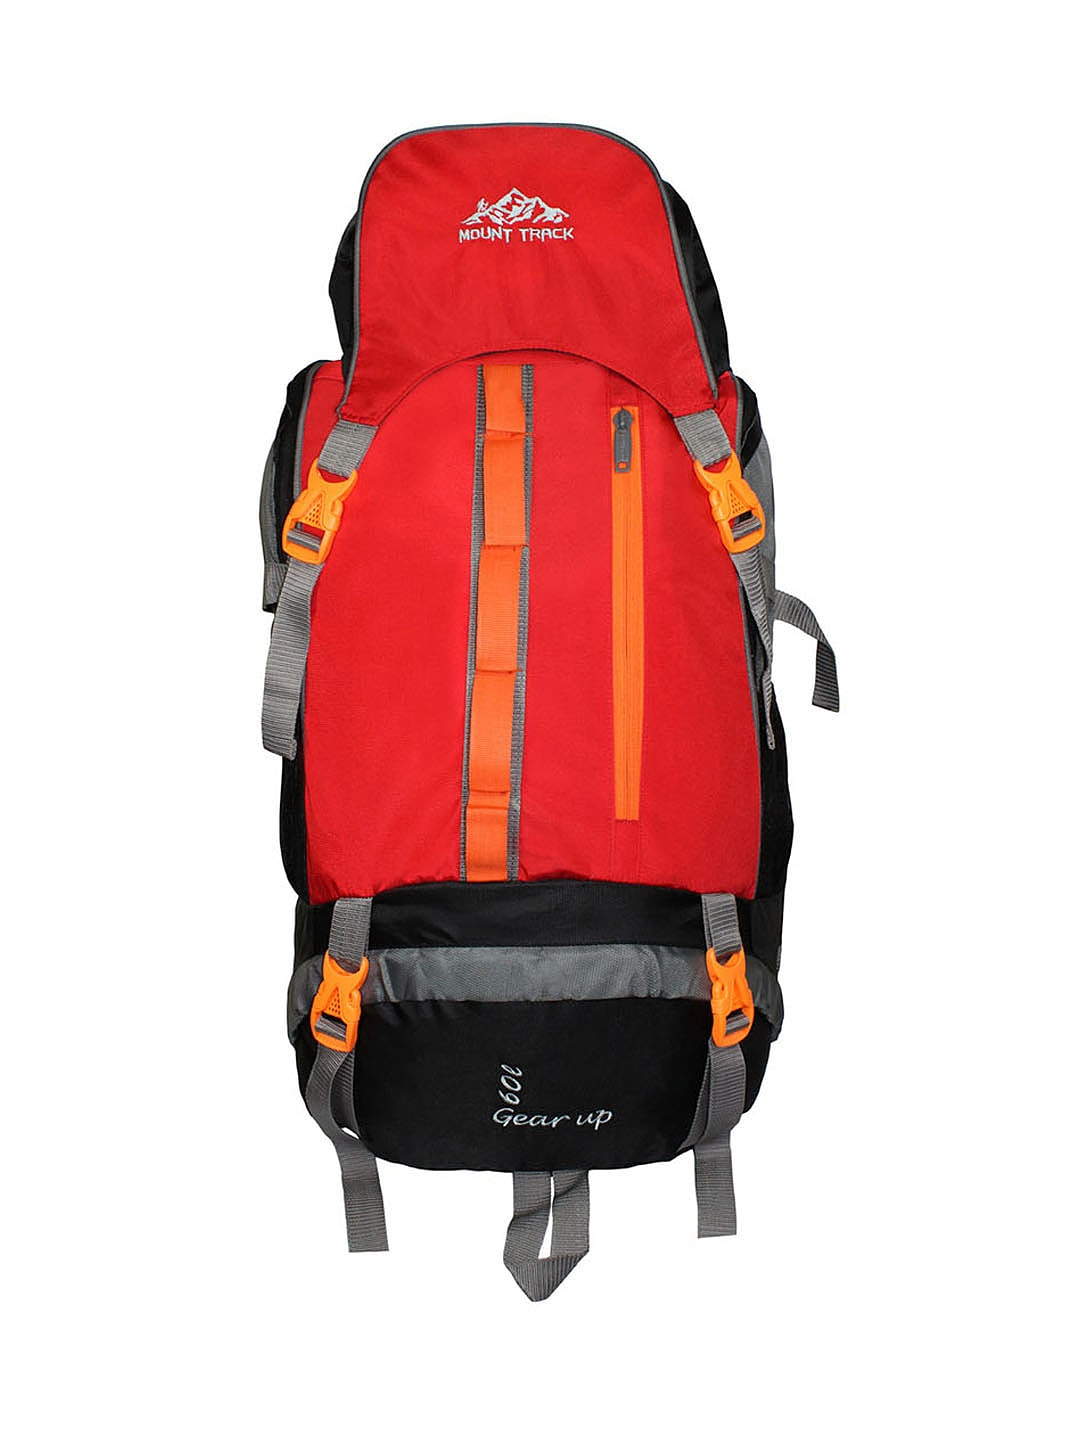 78774bd196ae1 Mount Track Rucksacks - Buy Mount Track Rucksacks online in India